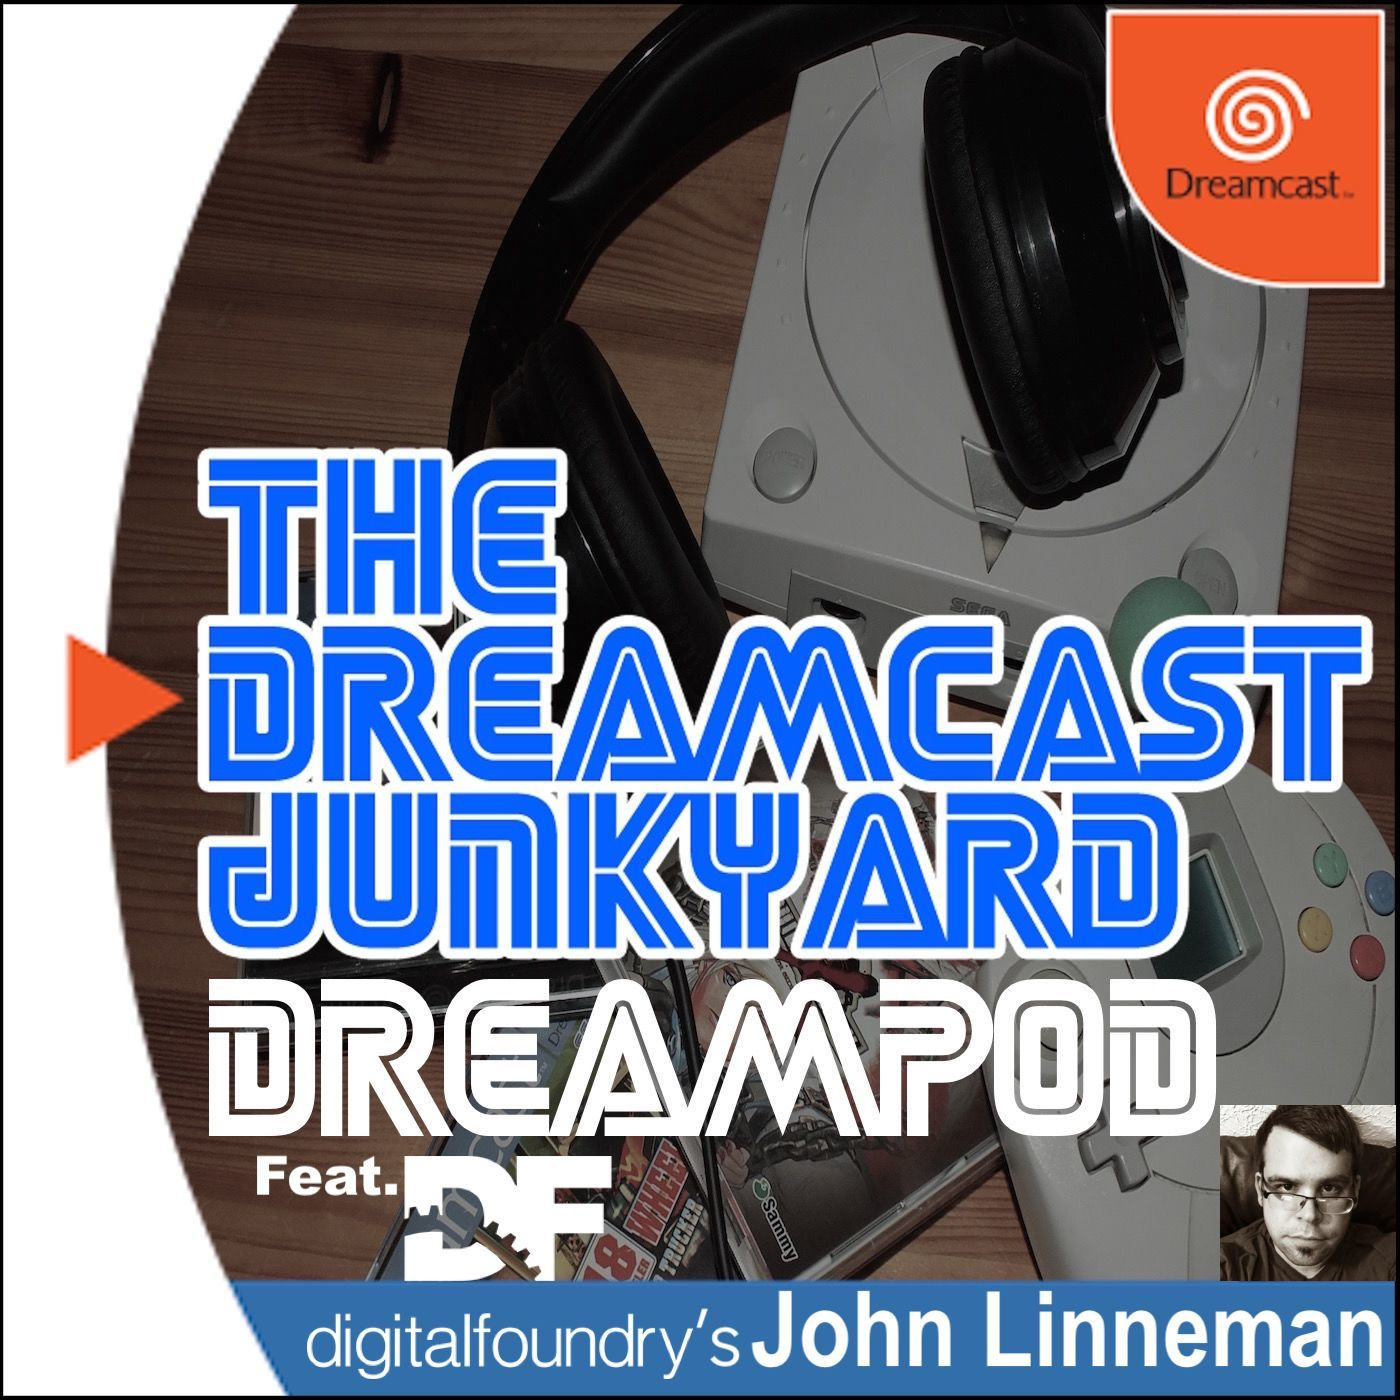 The Dreamcast Junkyard DreamPod - Episode 55: Featuring Digital Foundry's John Linneman